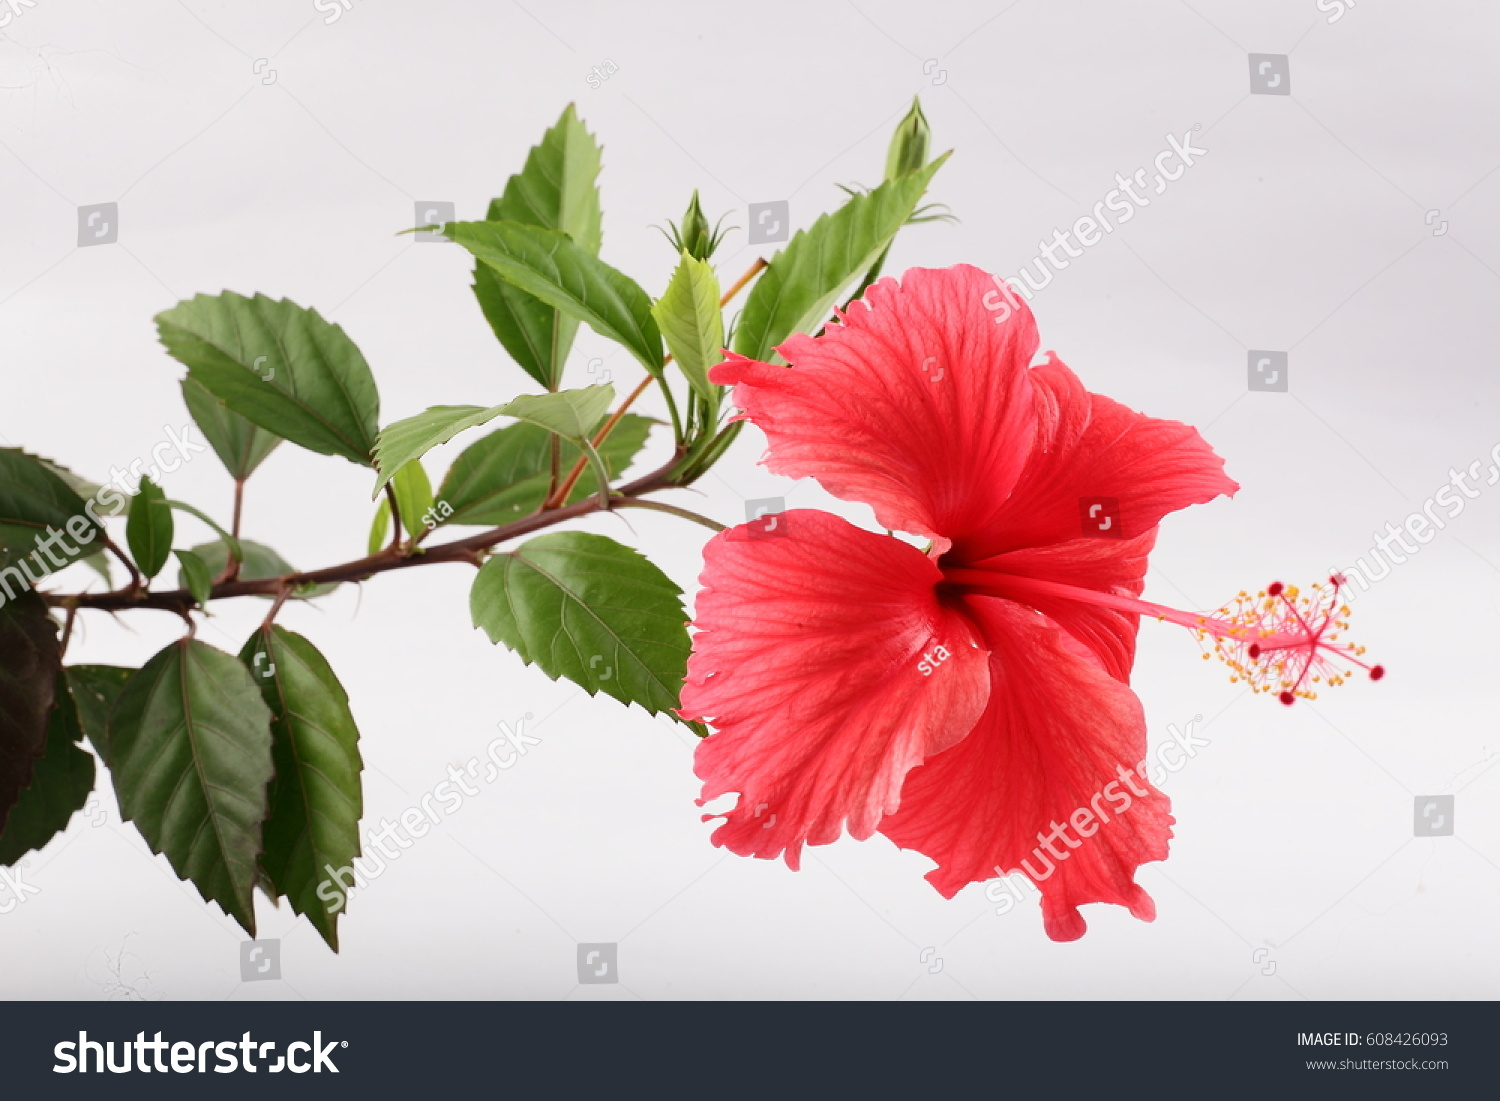 Tropical red hibiscus flower branch buds stock photo 100 legal tropical red hibiscus flower in branch with buds in white background izmirmasajfo